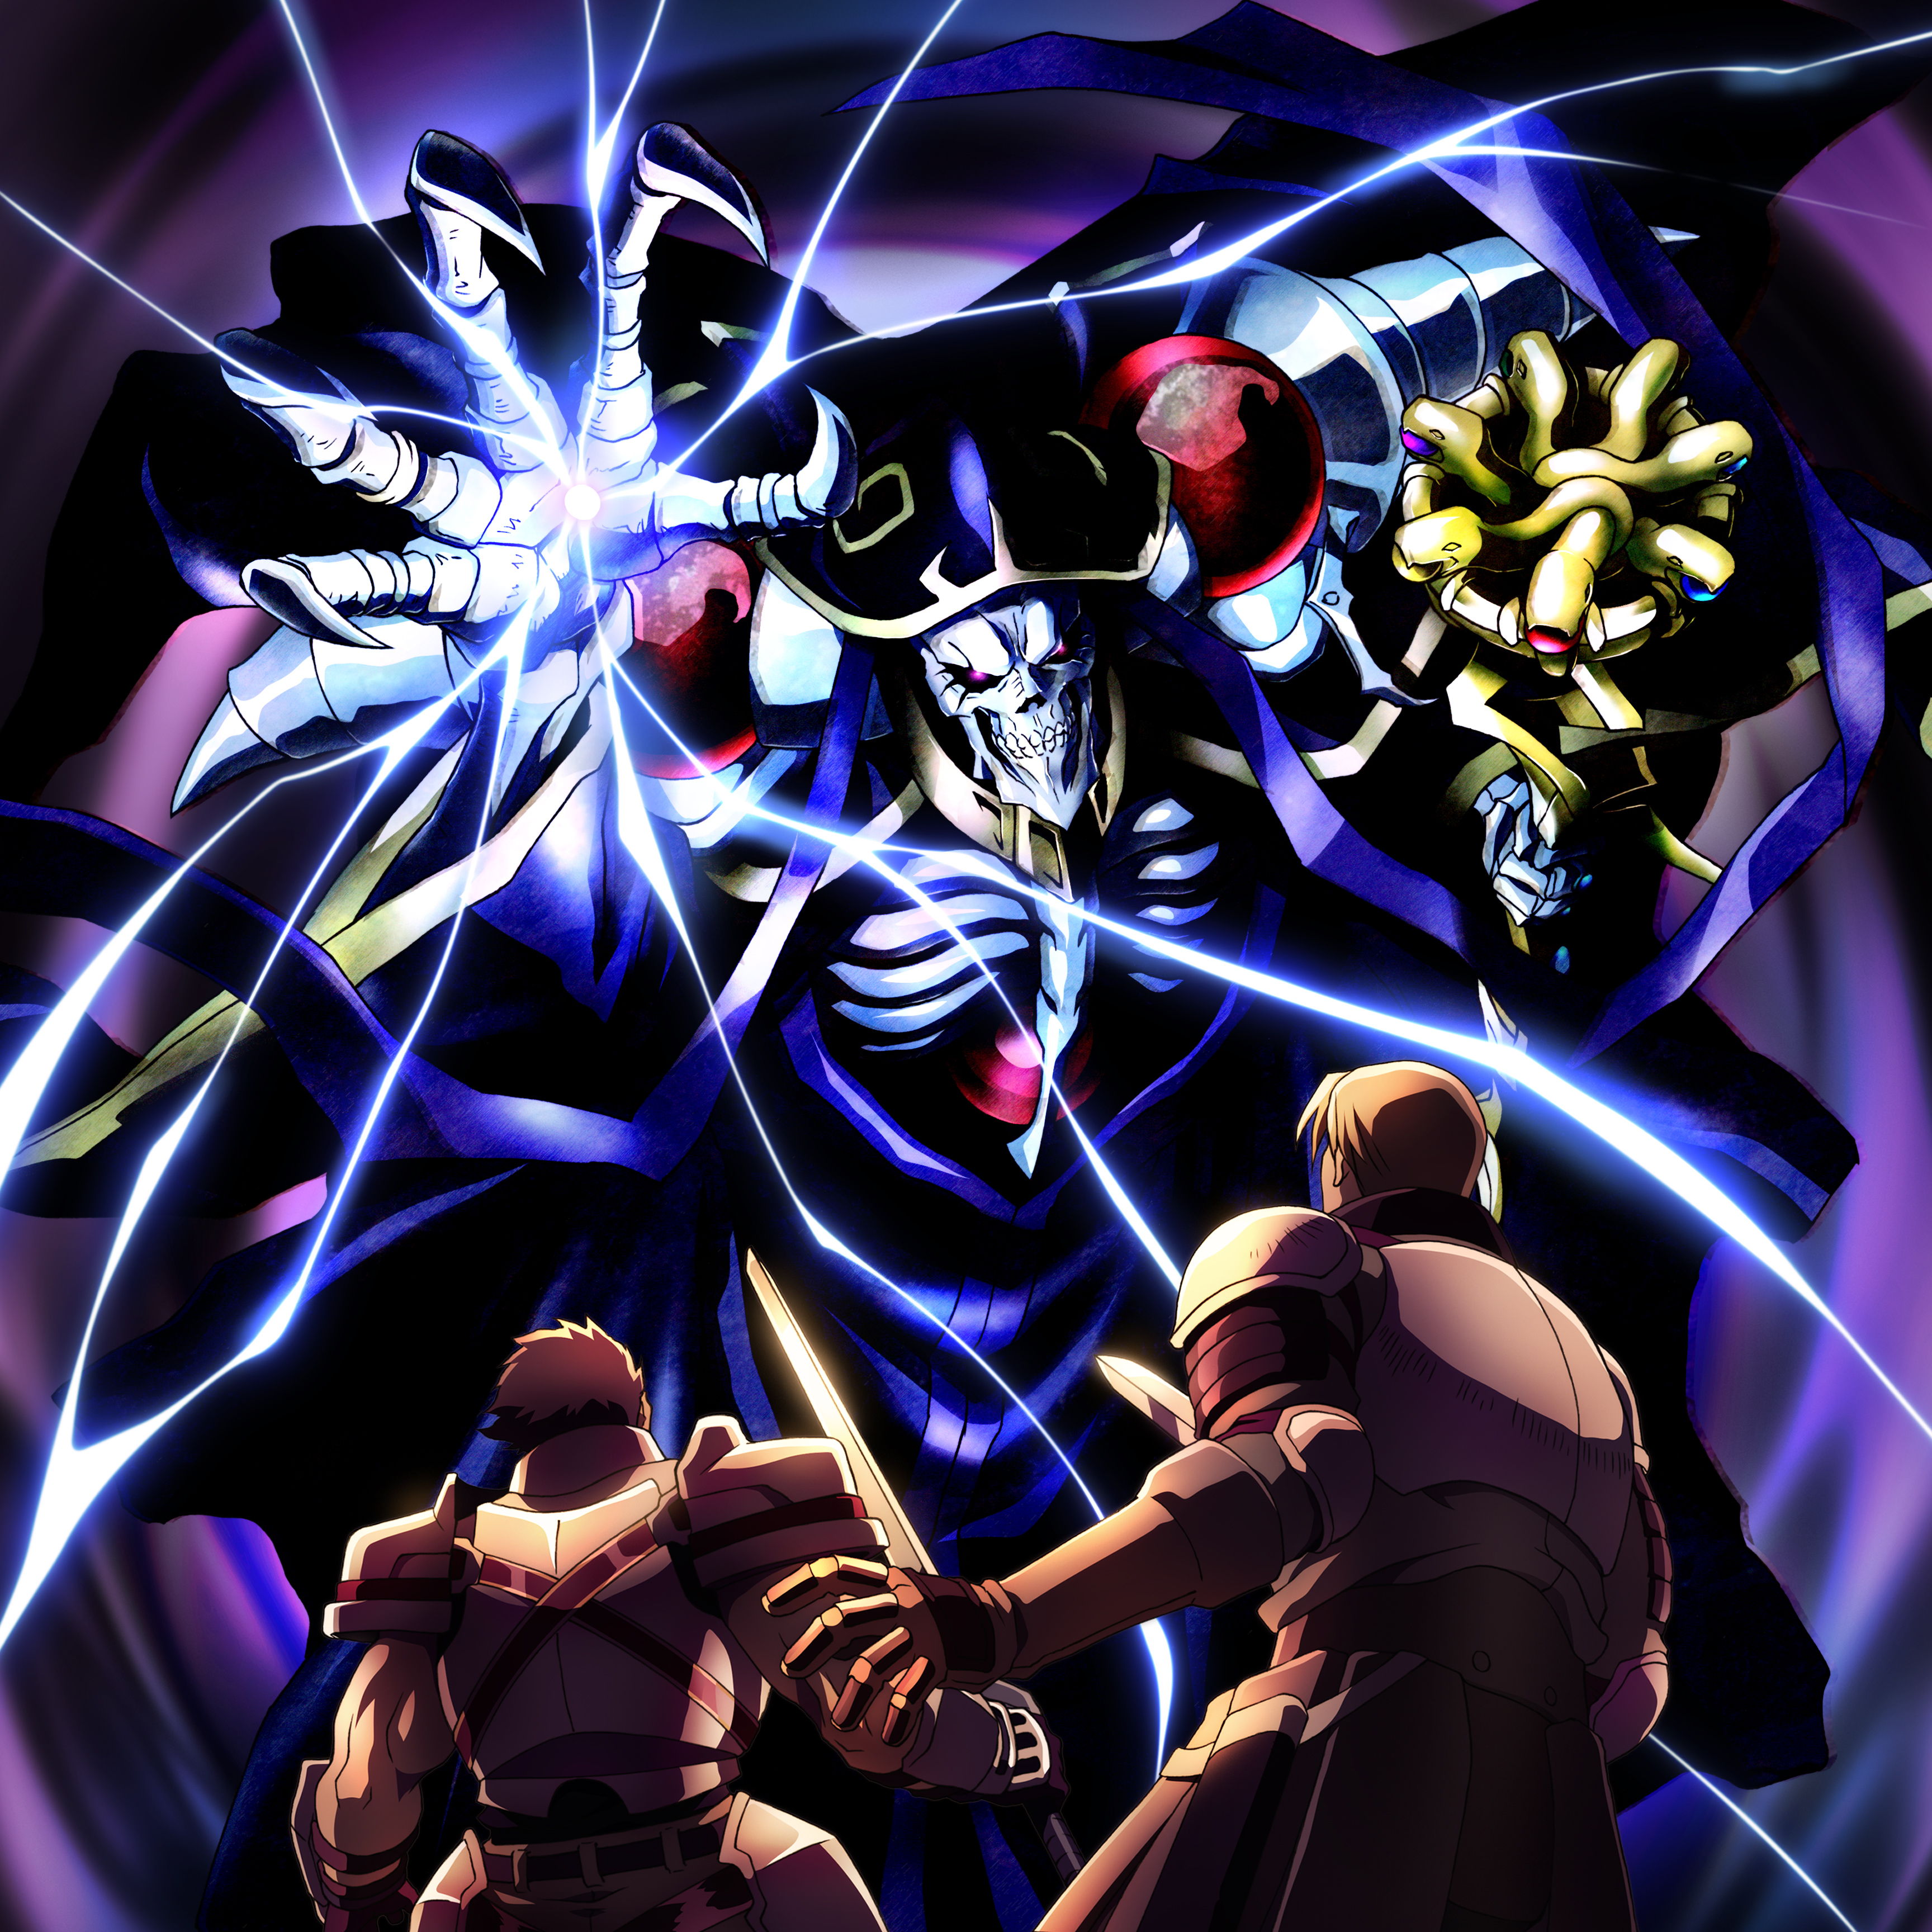 Watch Overlord Episodes Sub & Dub   Action/Adventure